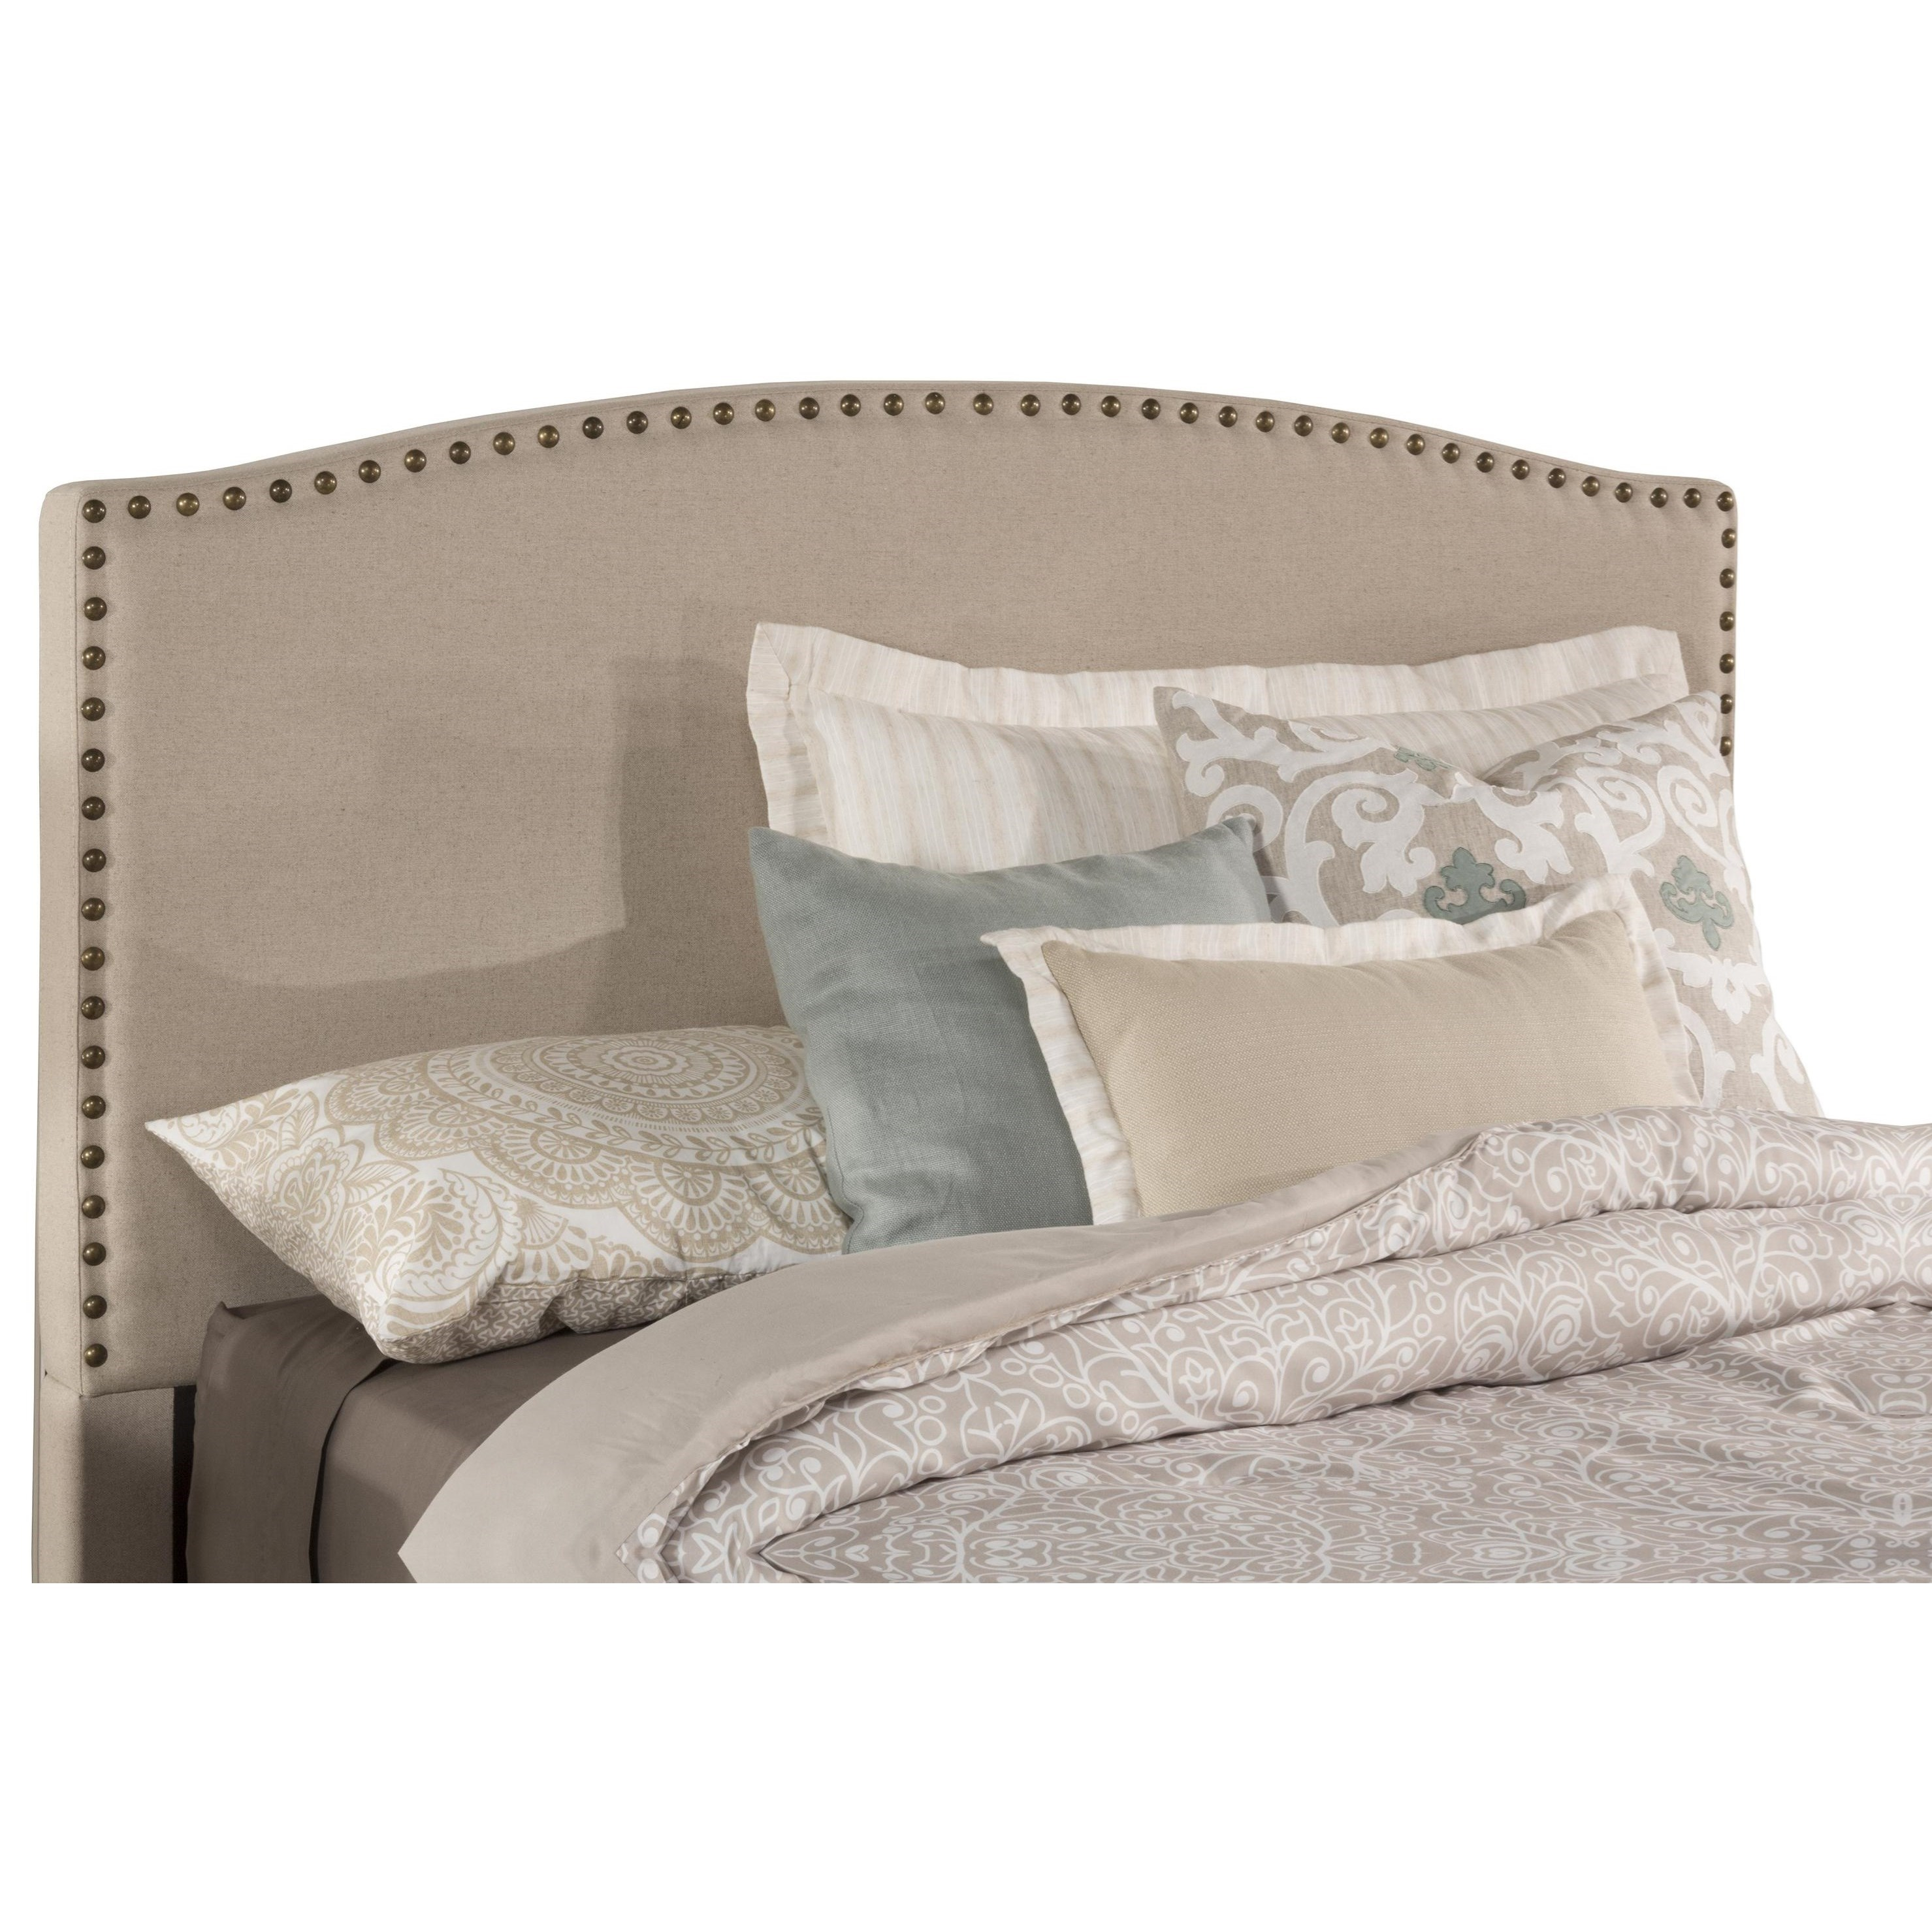 Hillsdale Kerstein Queen Headboard Frame Included - Item Number: 1932HQT